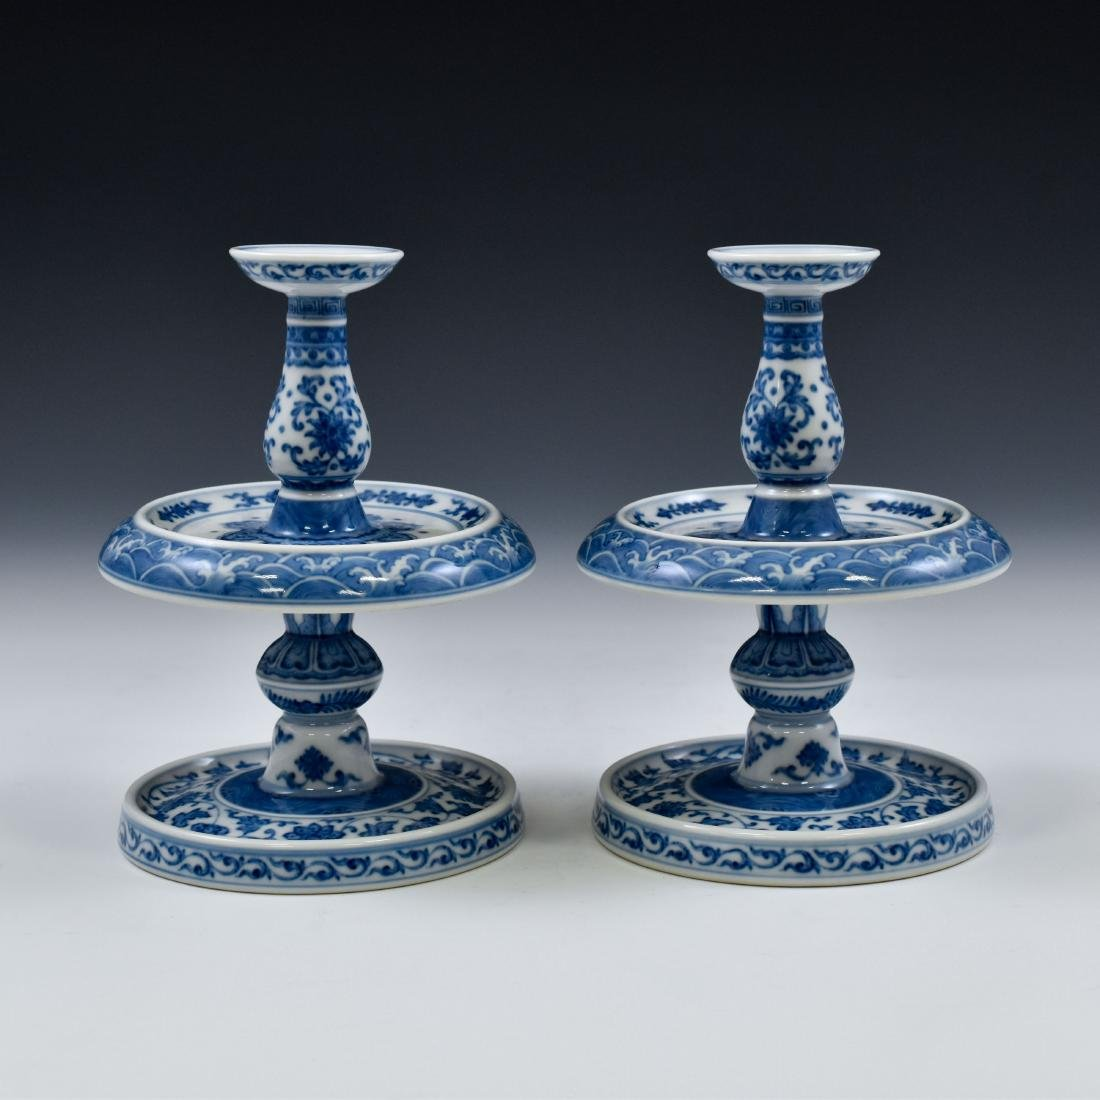 PAIR OF BLUE & WHITE PORCELAIN CANDLE HOLDERS